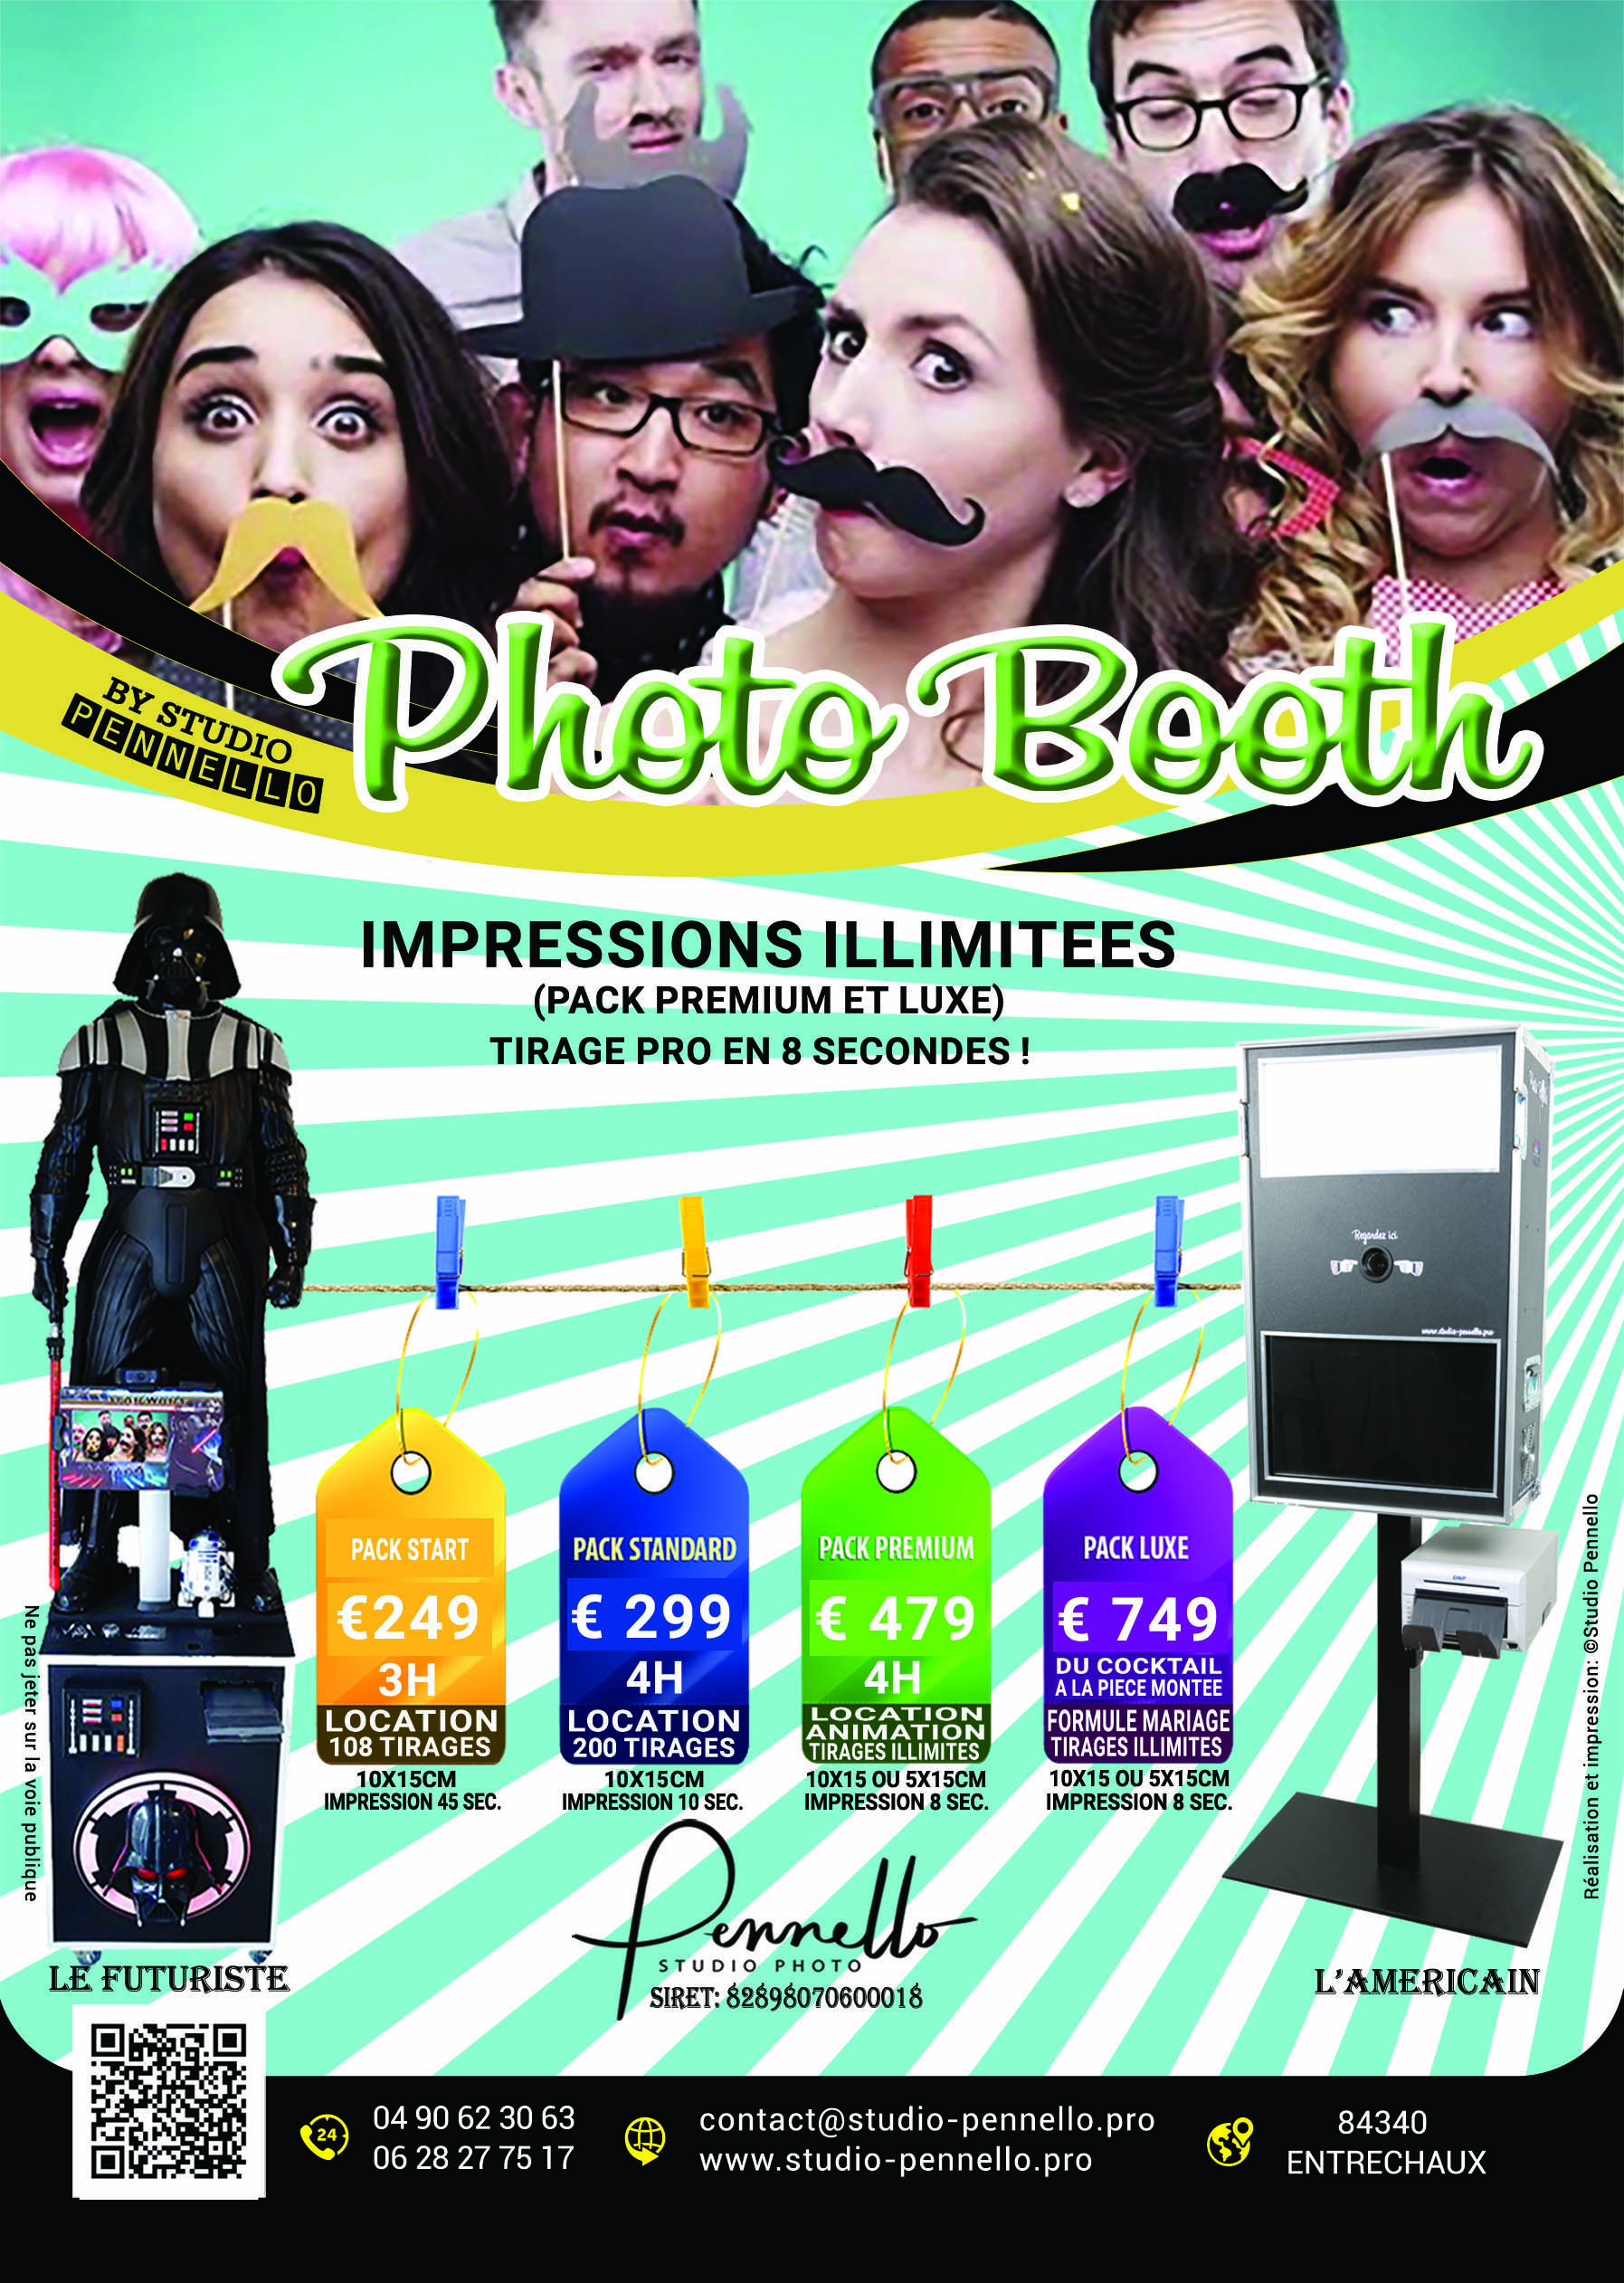 Photobooth Vaucluse Studio Pennello